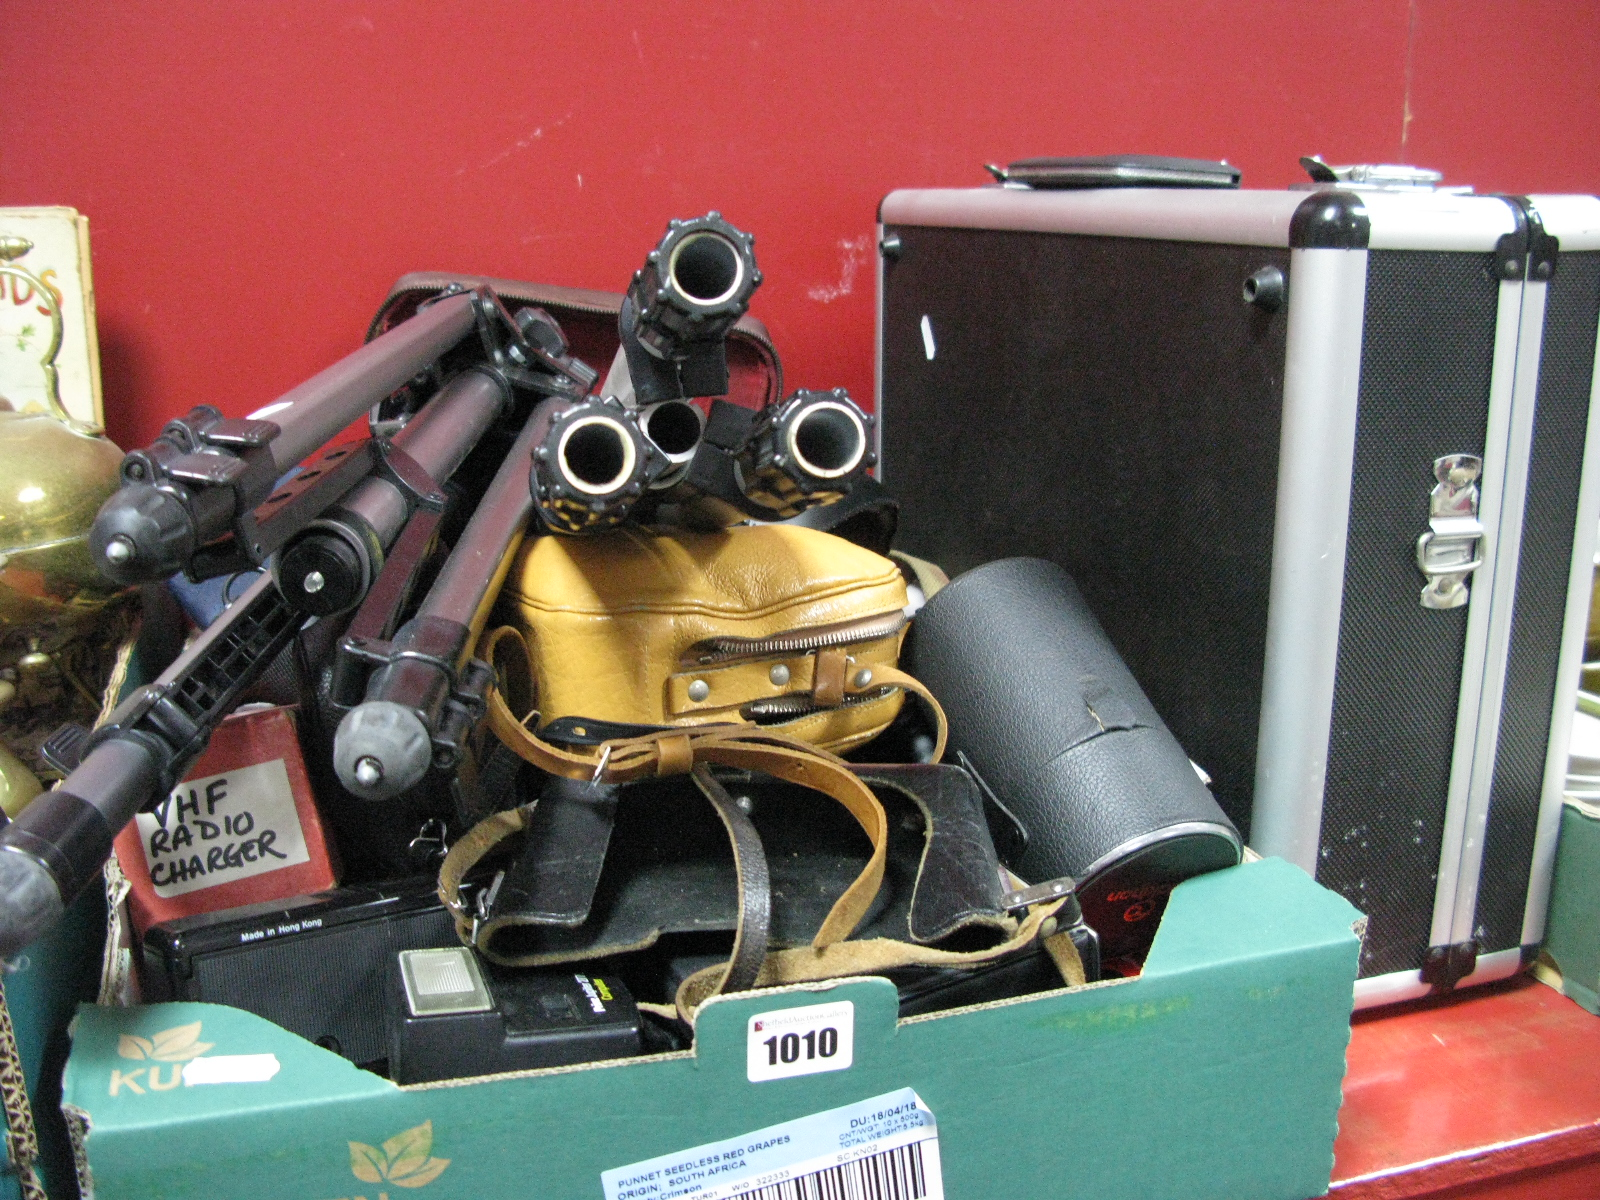 Lot 1010 - Camera Accessories, tripod, lens, cases, light meters, filters, instamatic camera's glass slides,